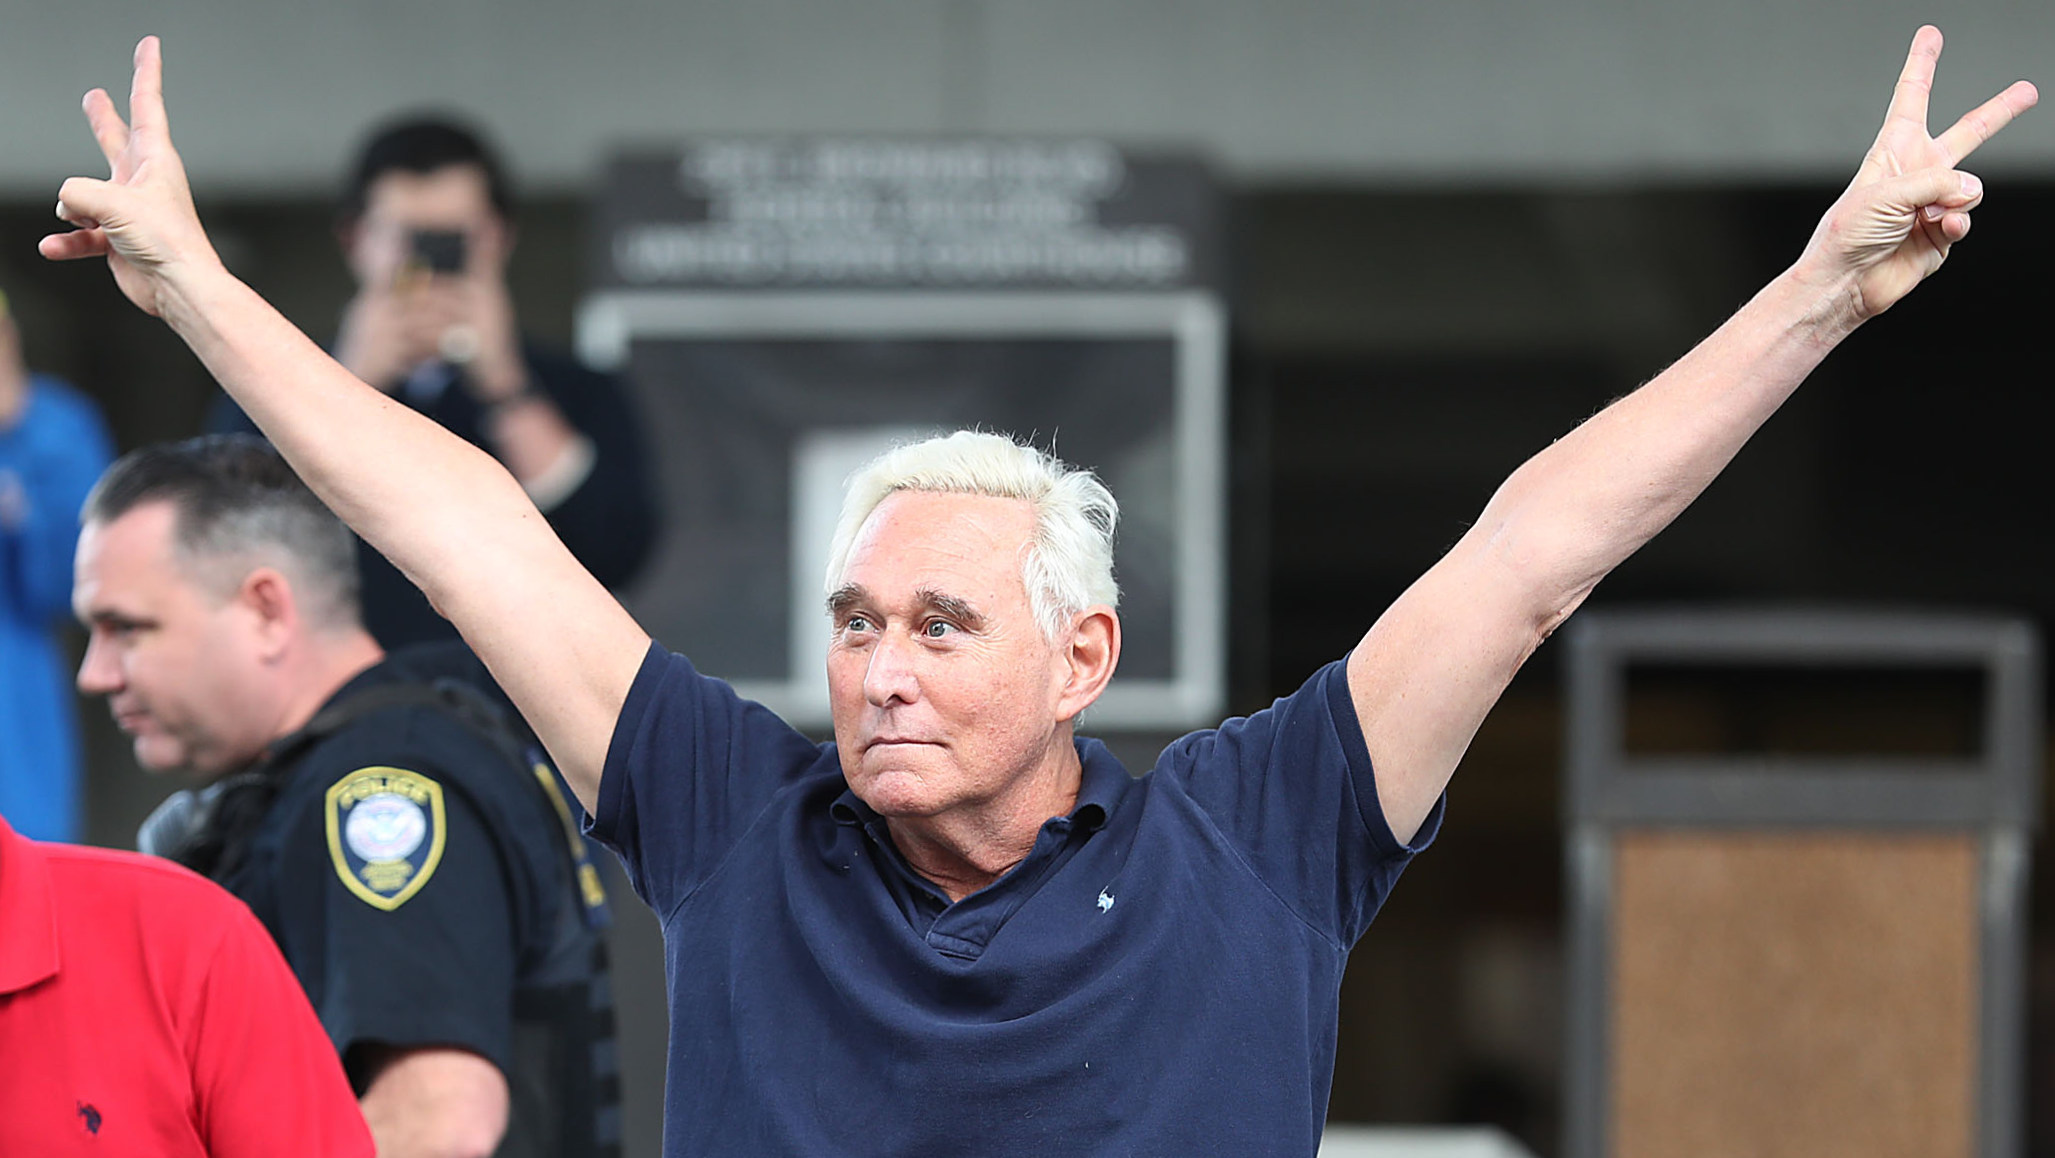 Judge In Roger Stone Trial Rips Defense For Not Googling Jurors